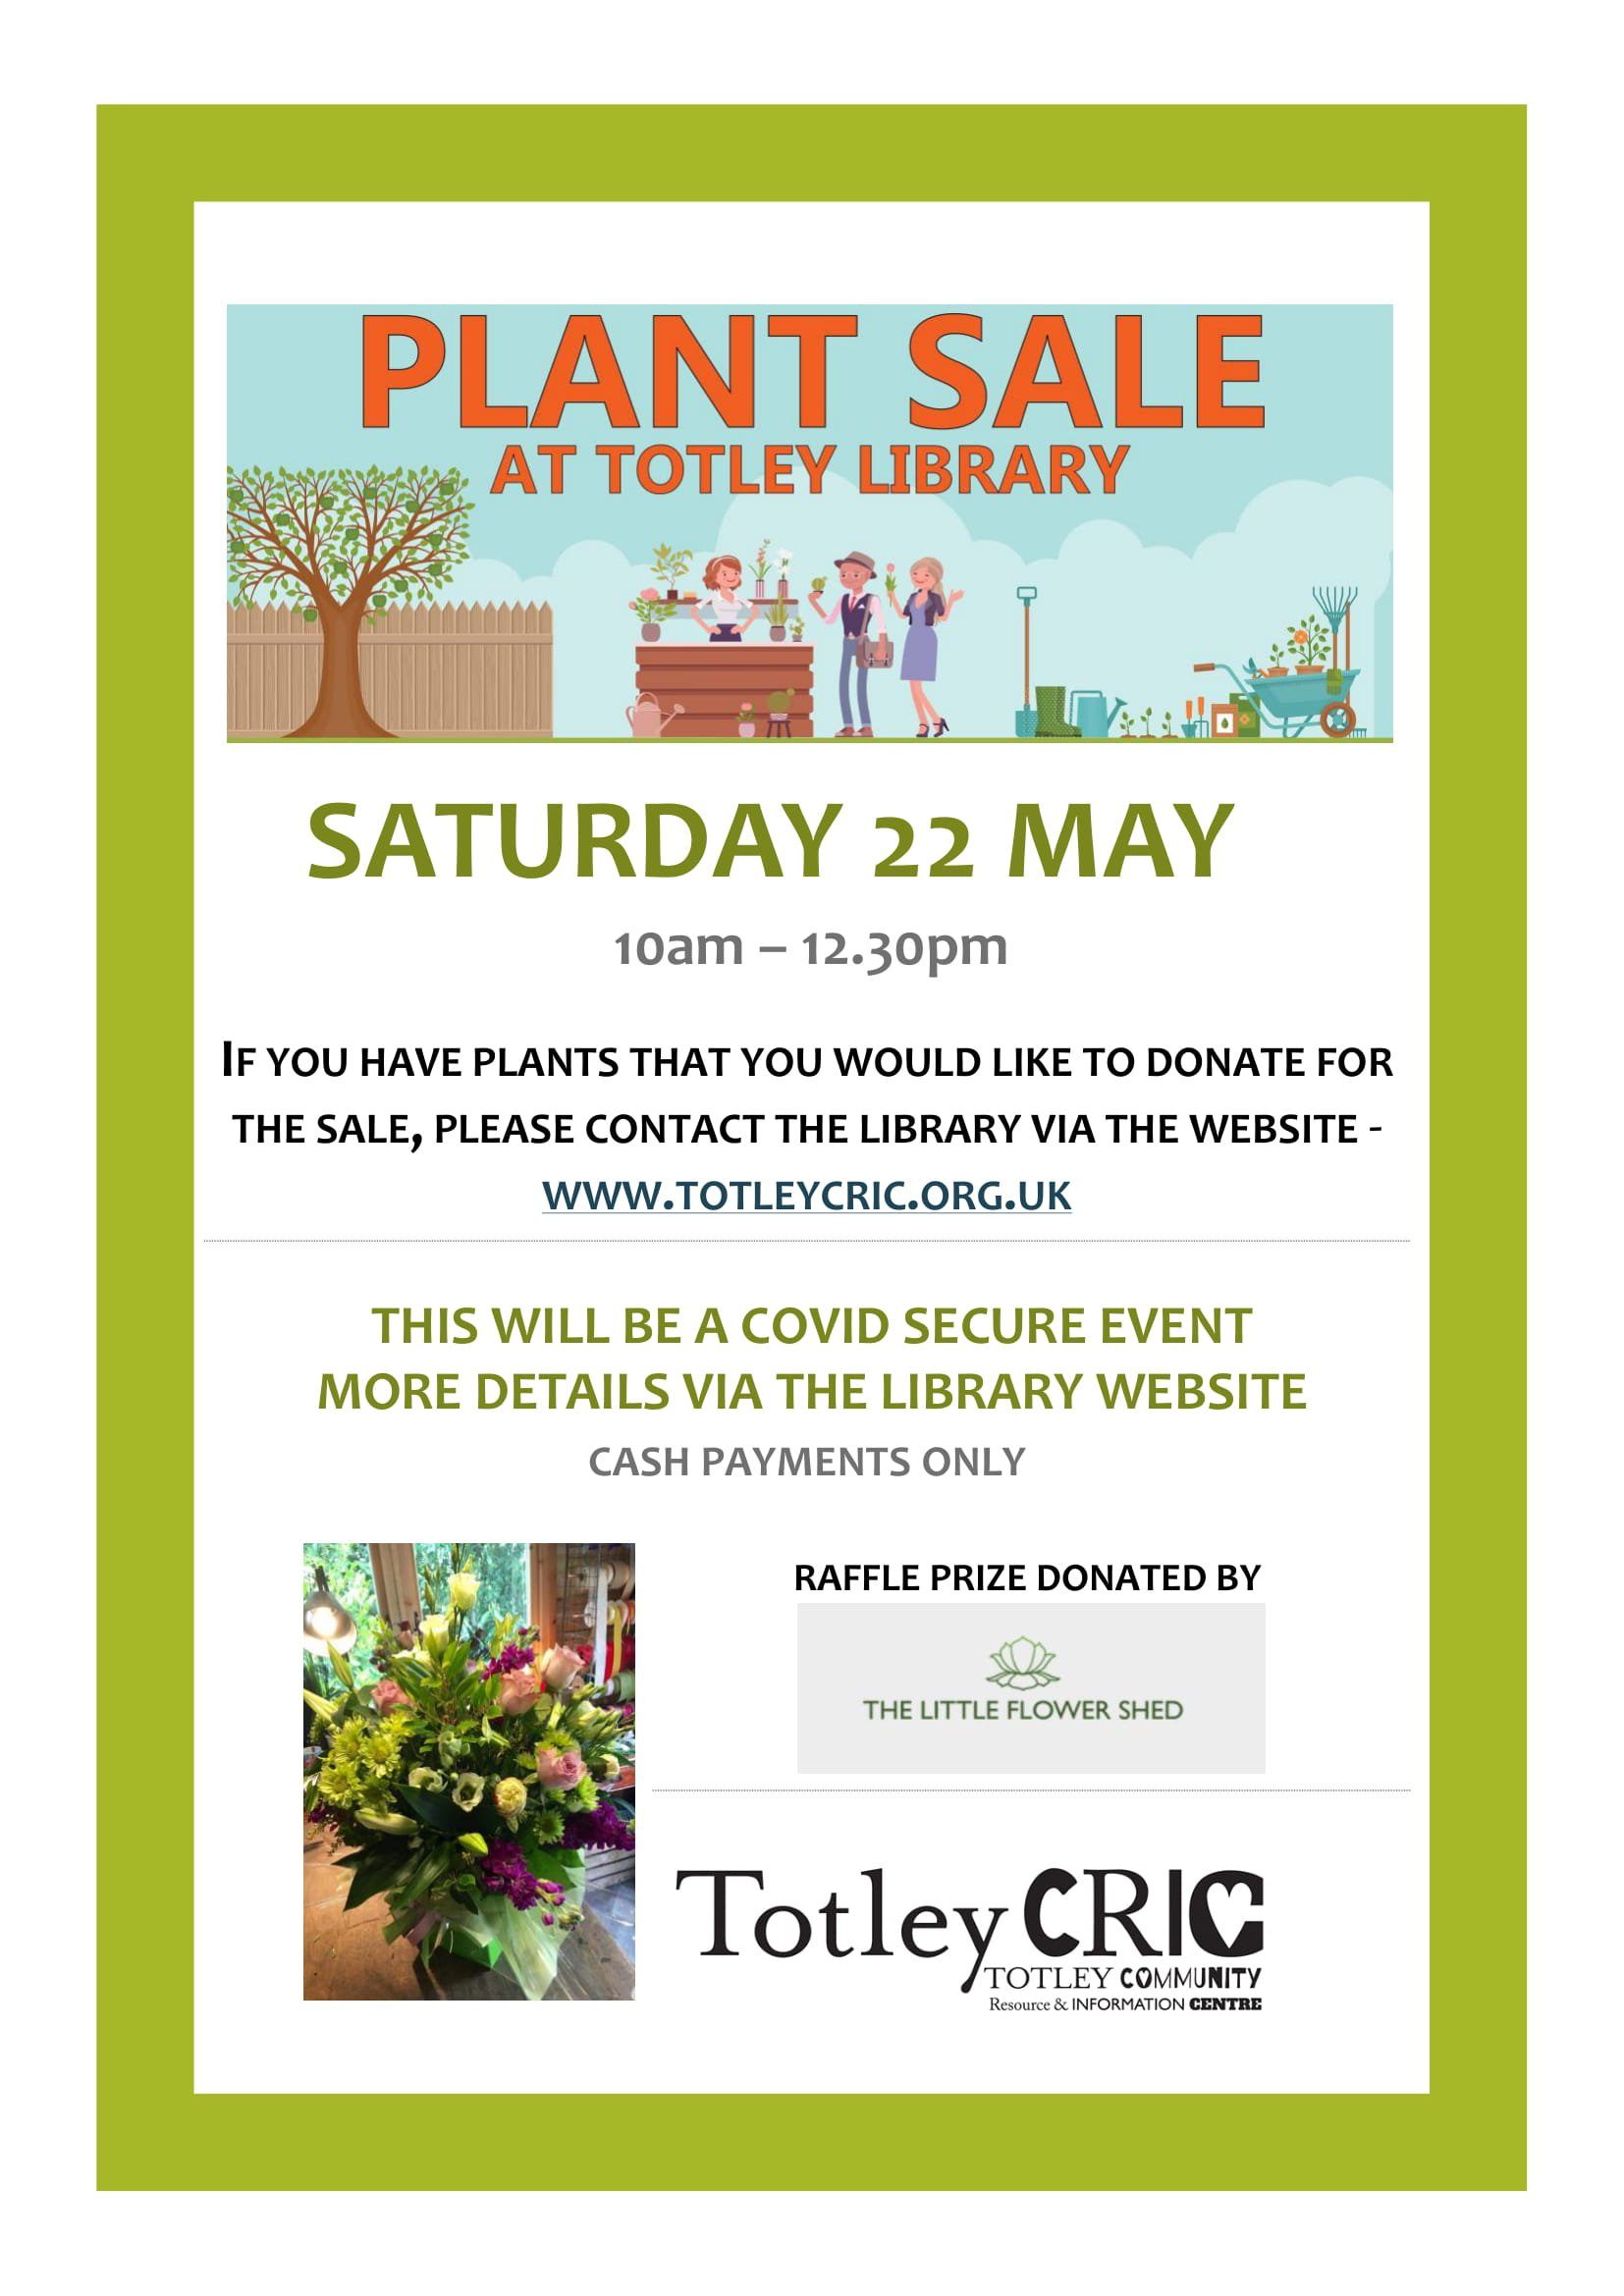 Plant Sale at Totley Library